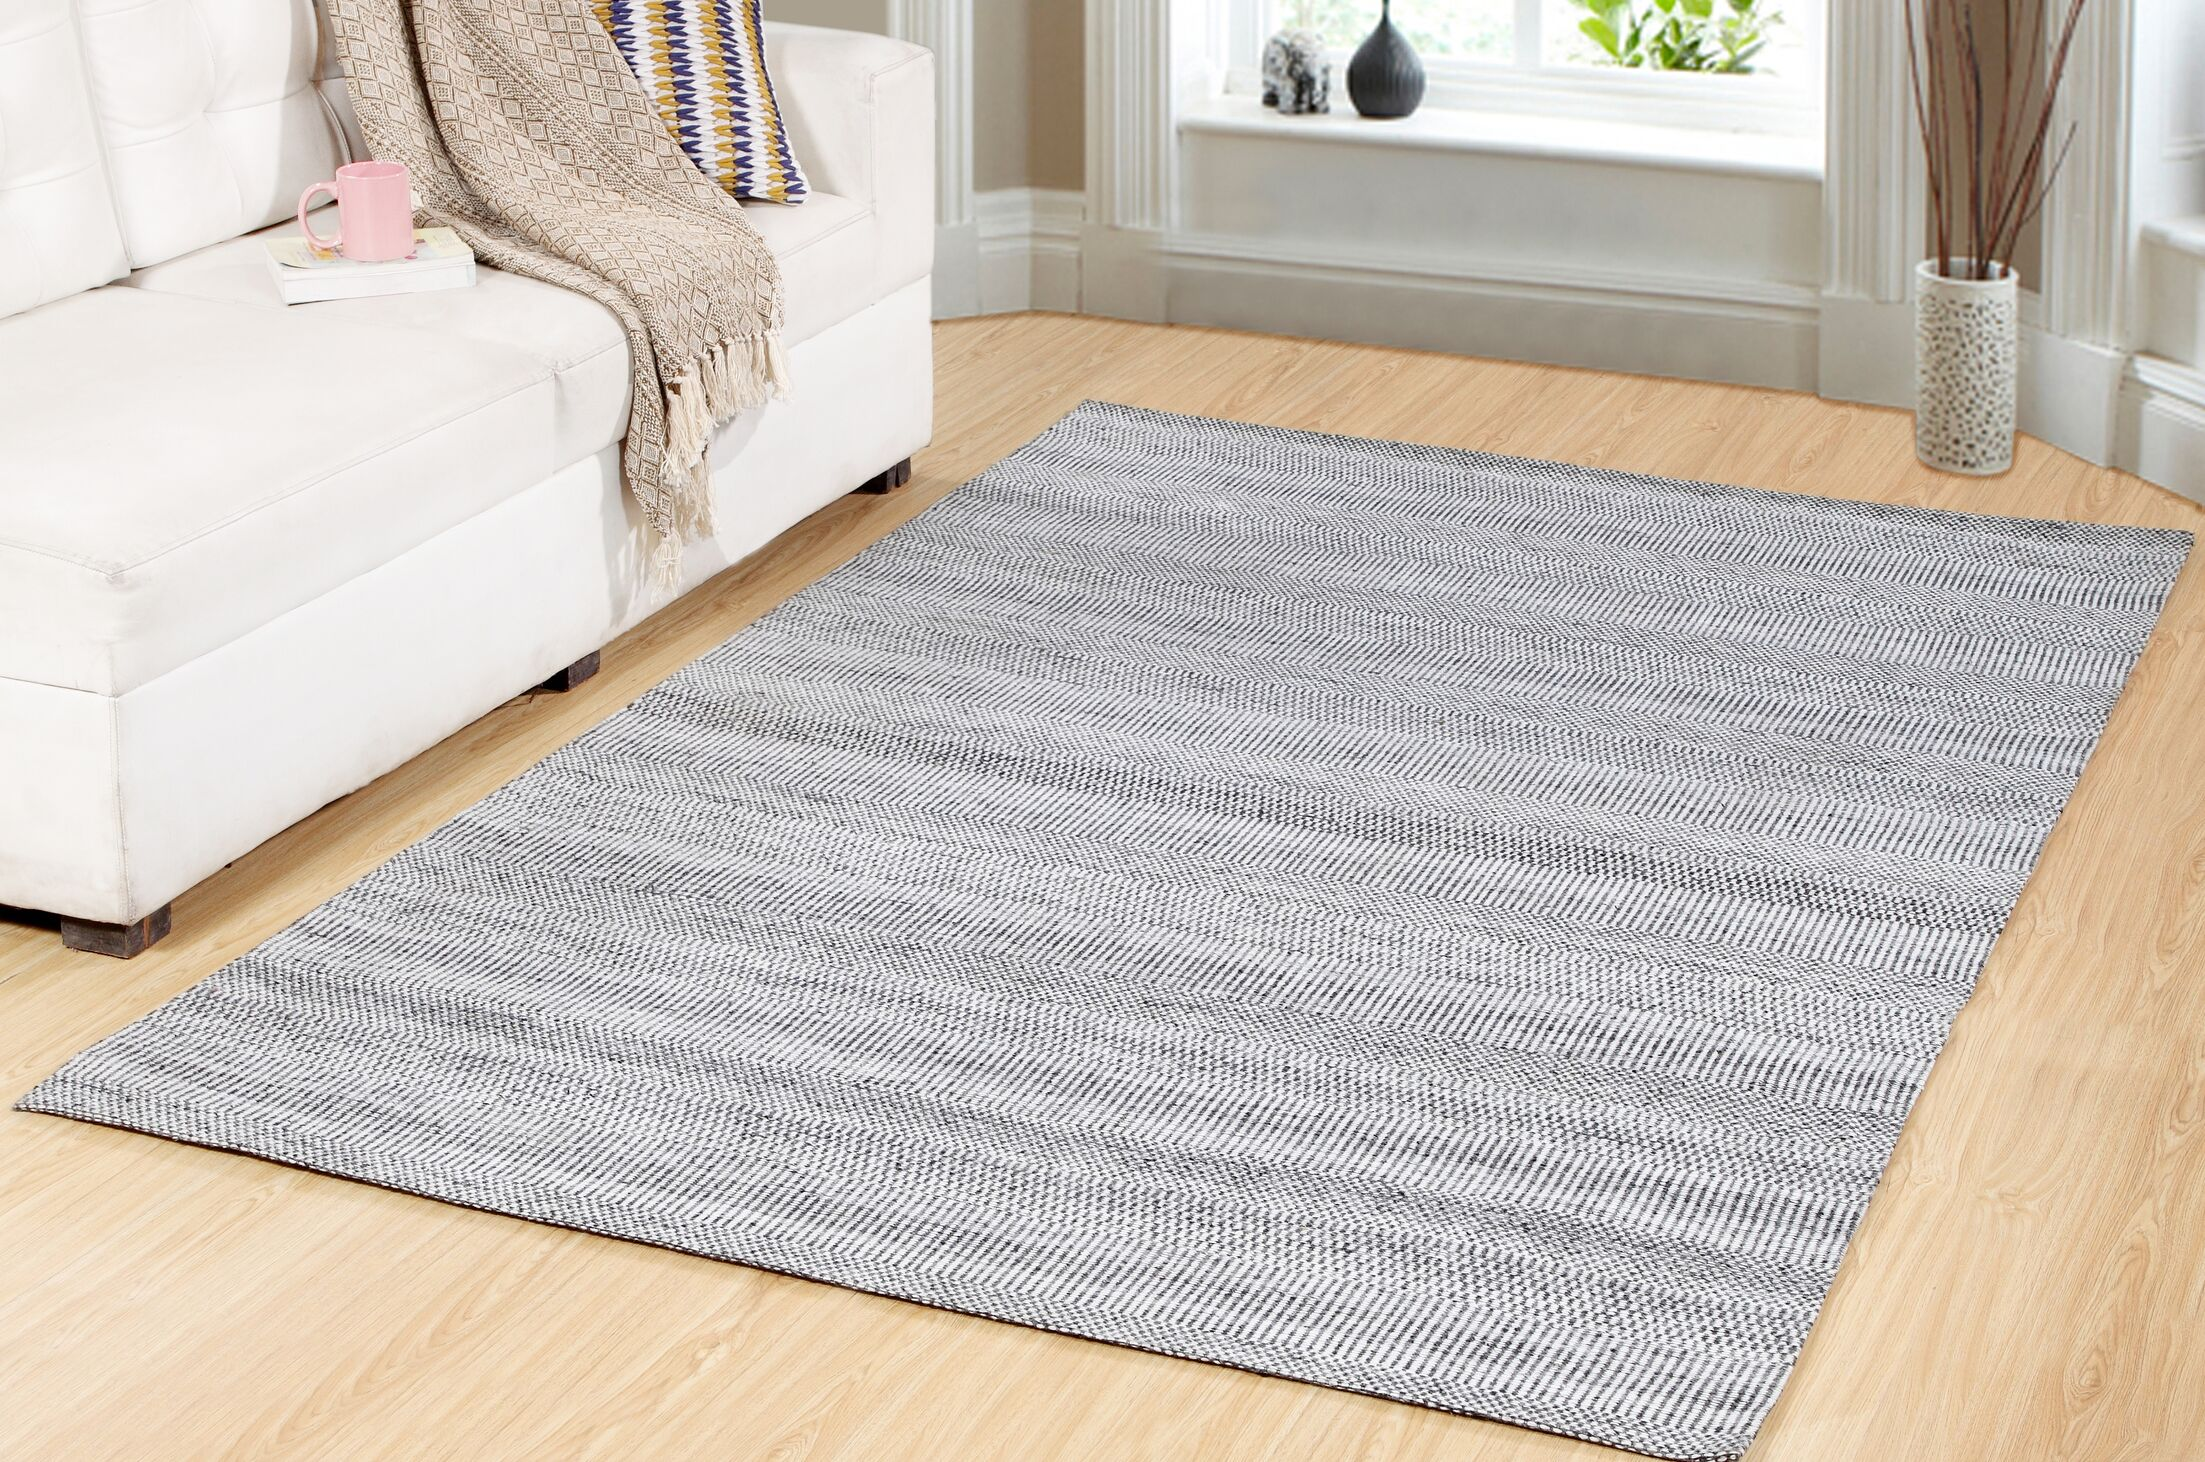 One-of-a-Kind Trance Hand-Woven Gray Area Rug Rug Size: Rectangle 2' x 7'6